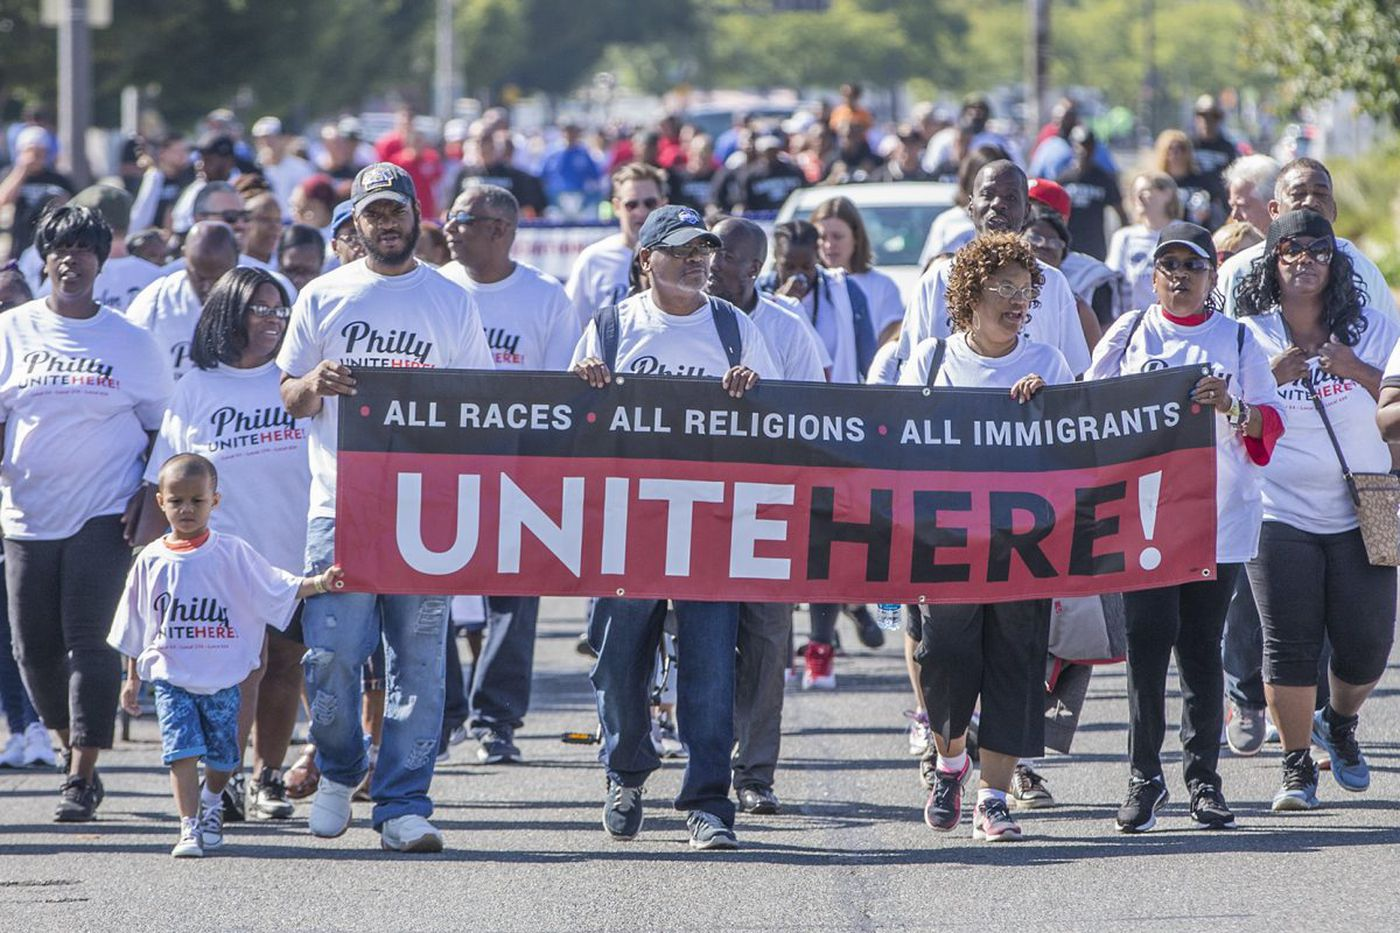 Labor Day in Philly: For unions, a celebration laced with anxieties